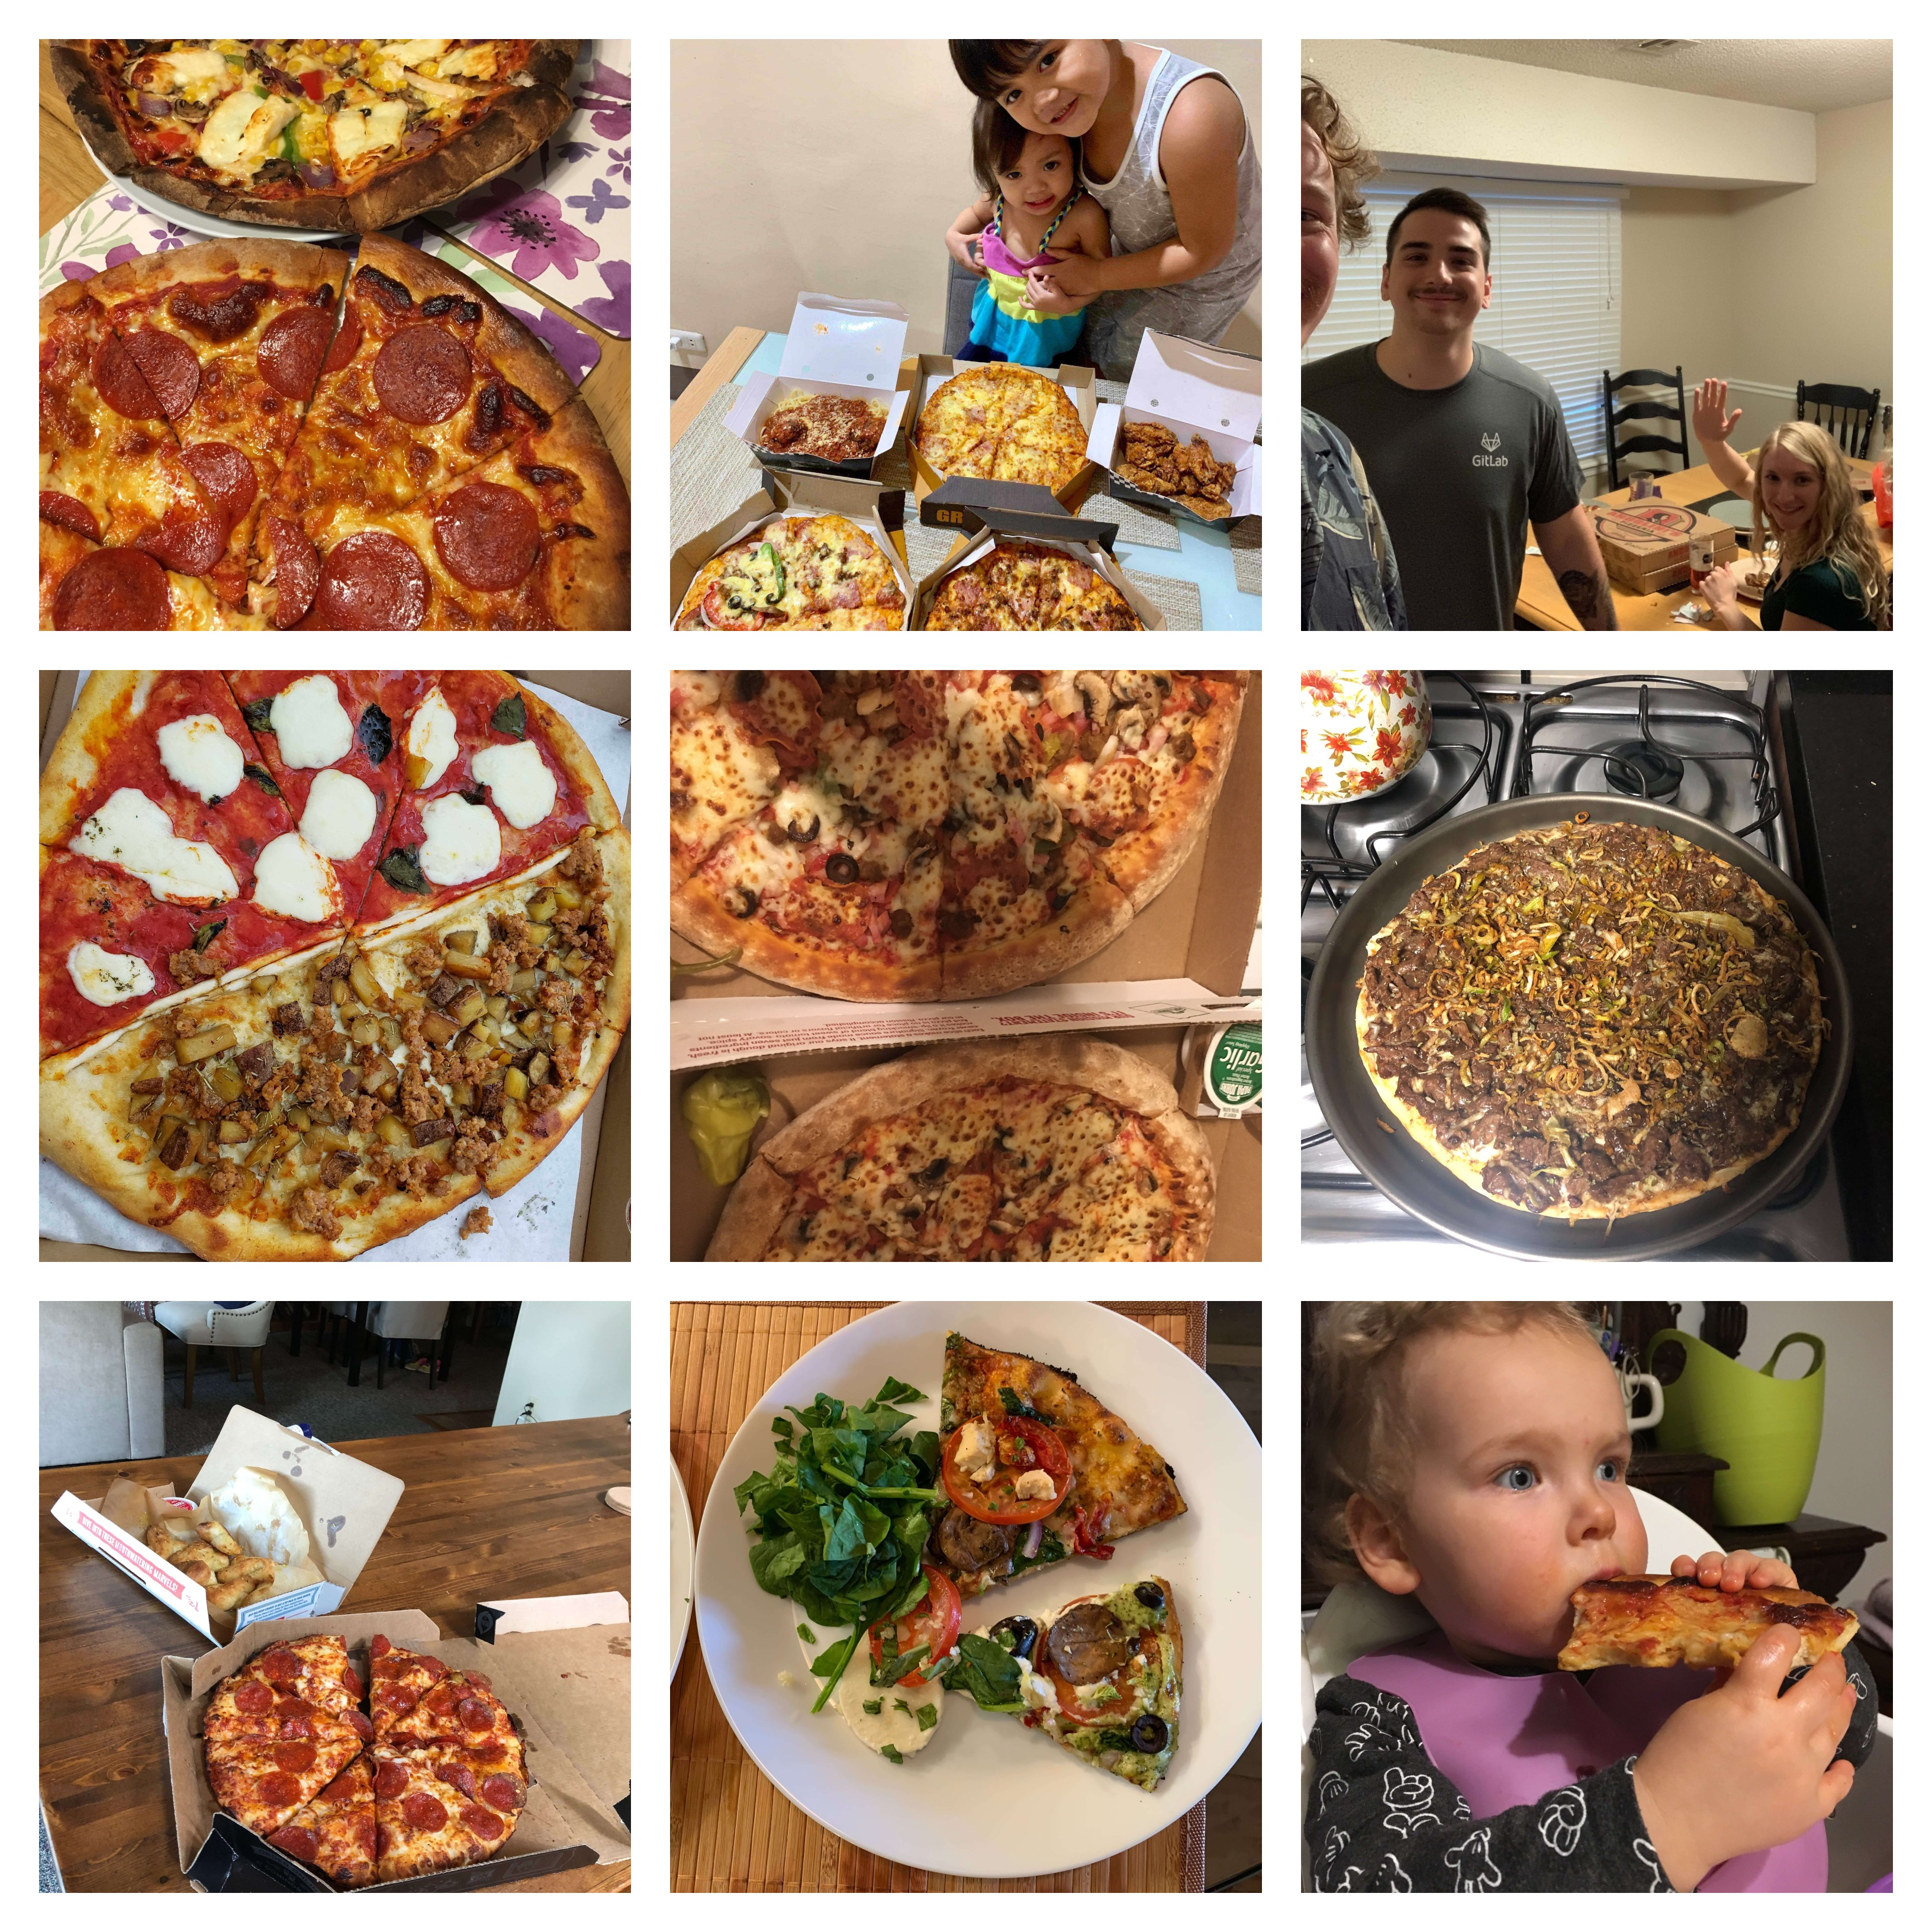 Support Pizza Party 2019-09-27 Collage 5